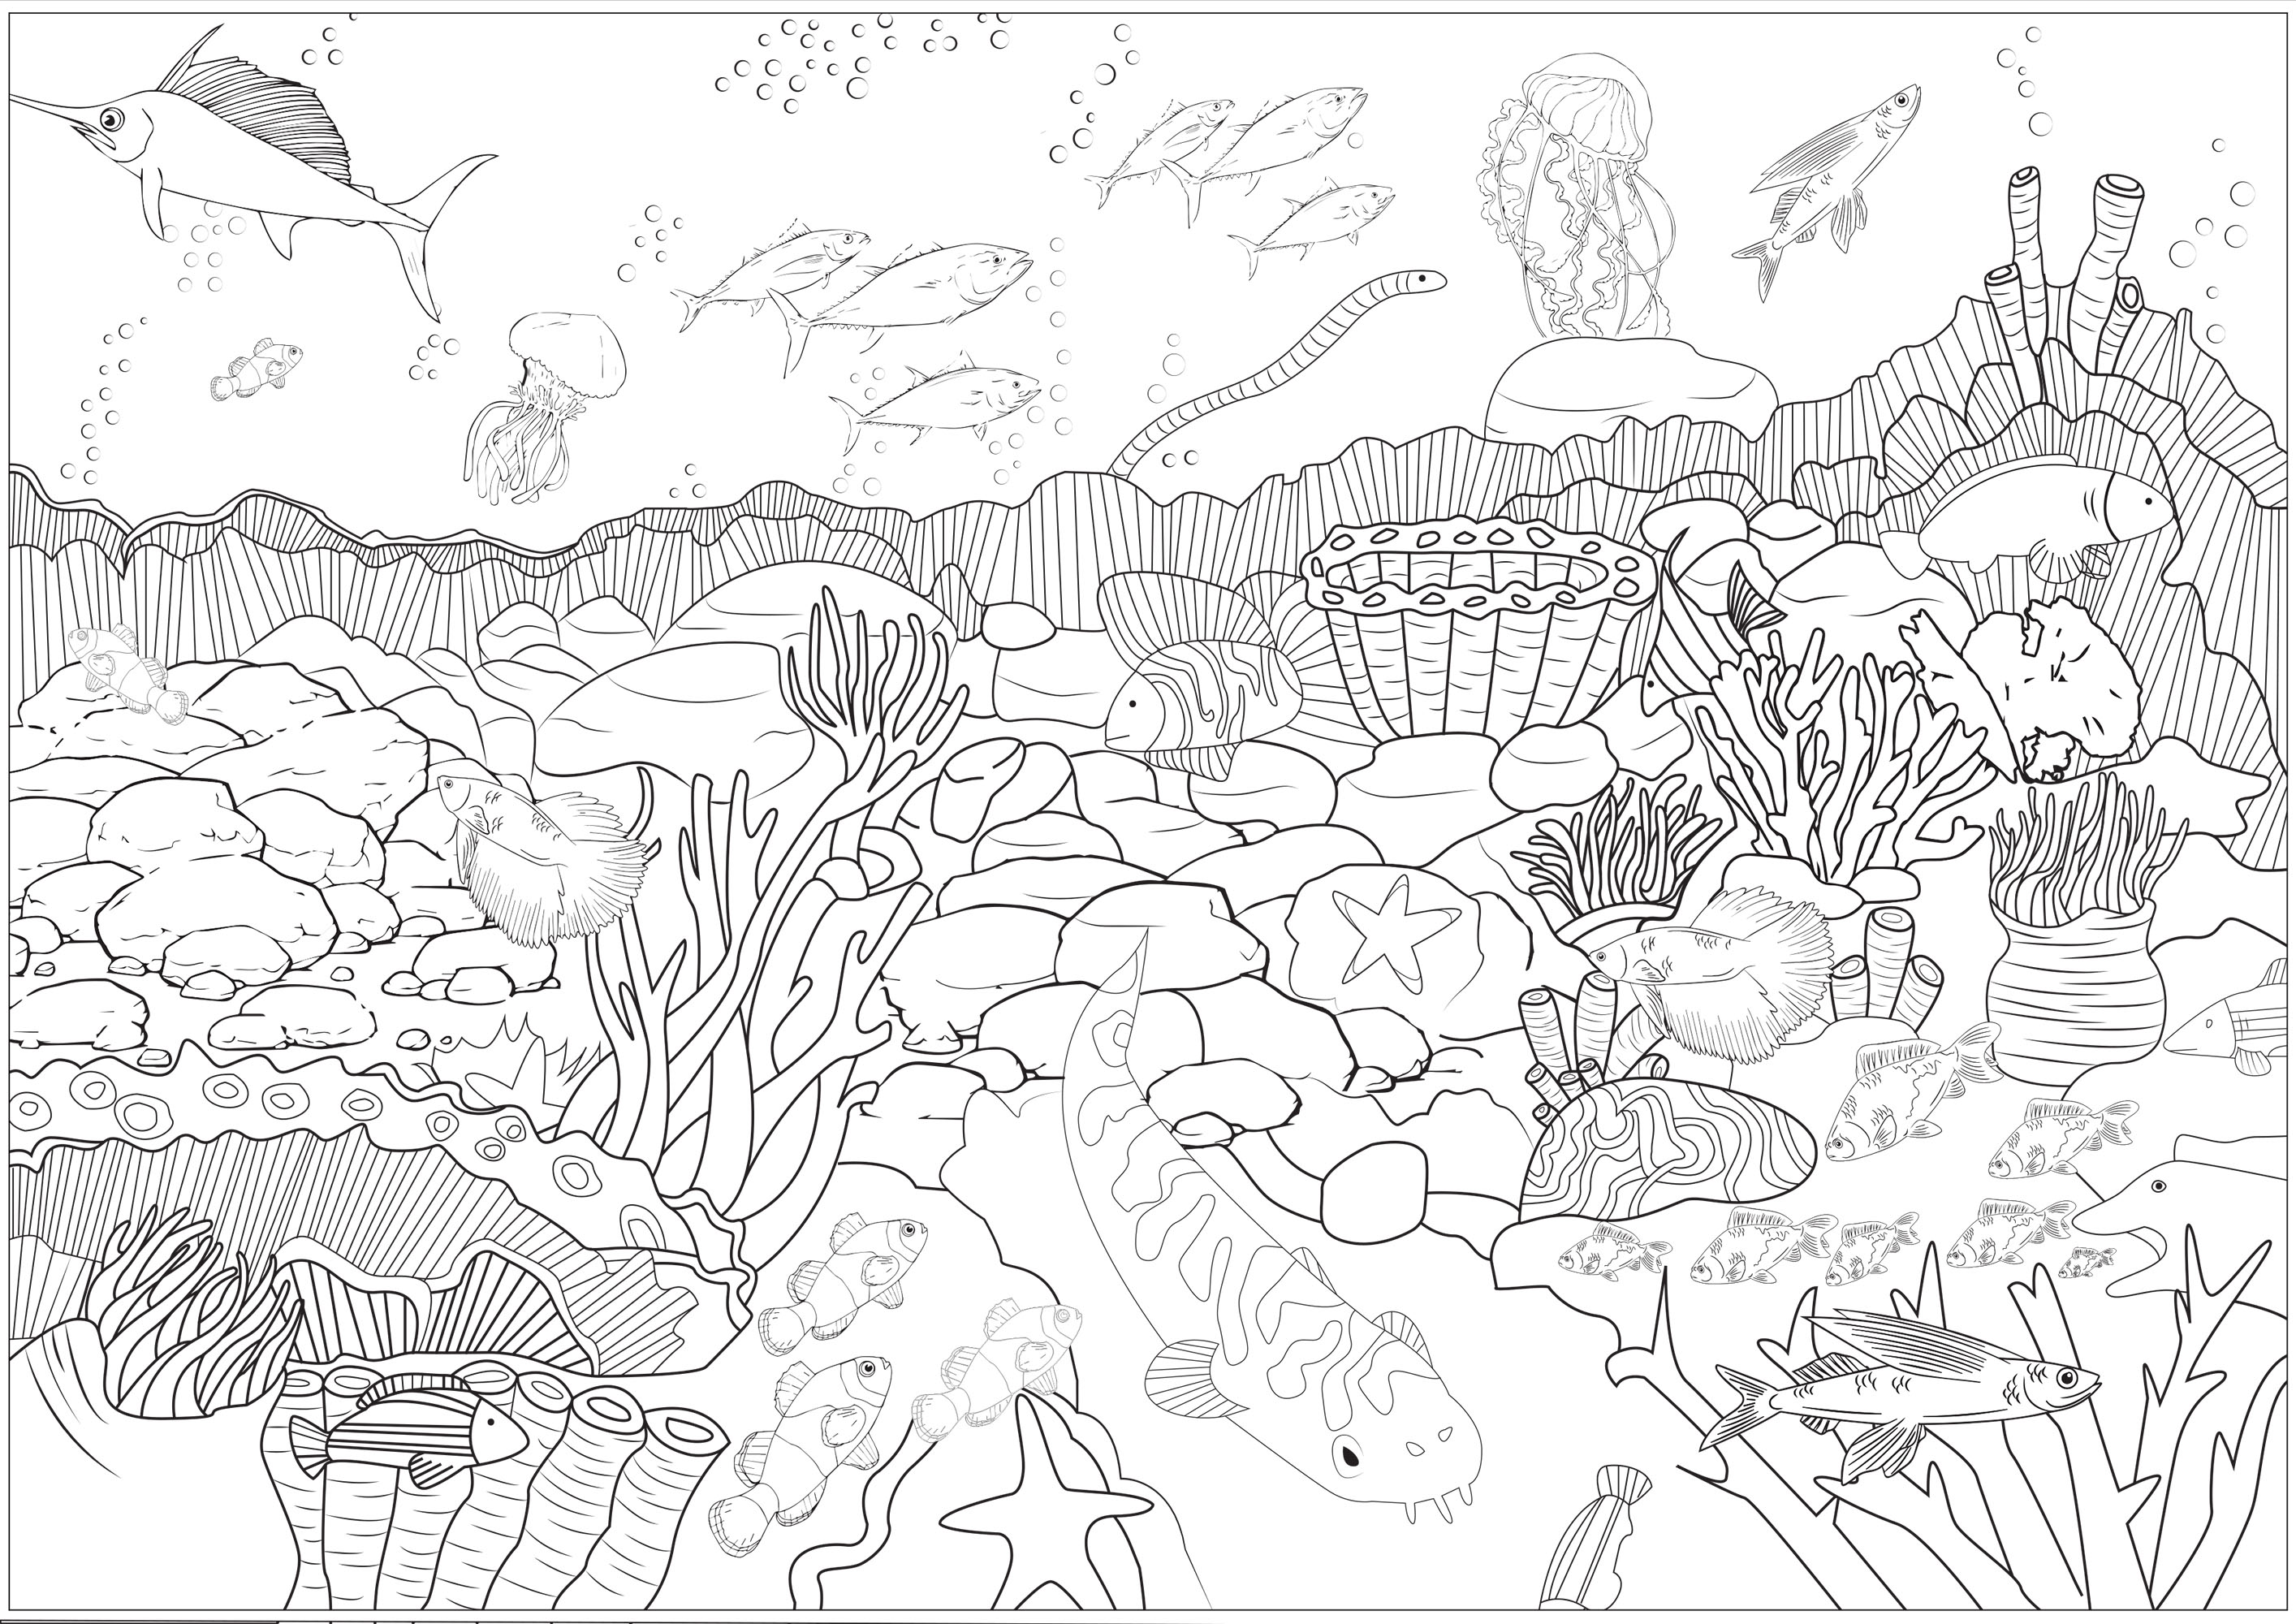 Color these seabed and the different species of fishes, octopus, corals that live there ...